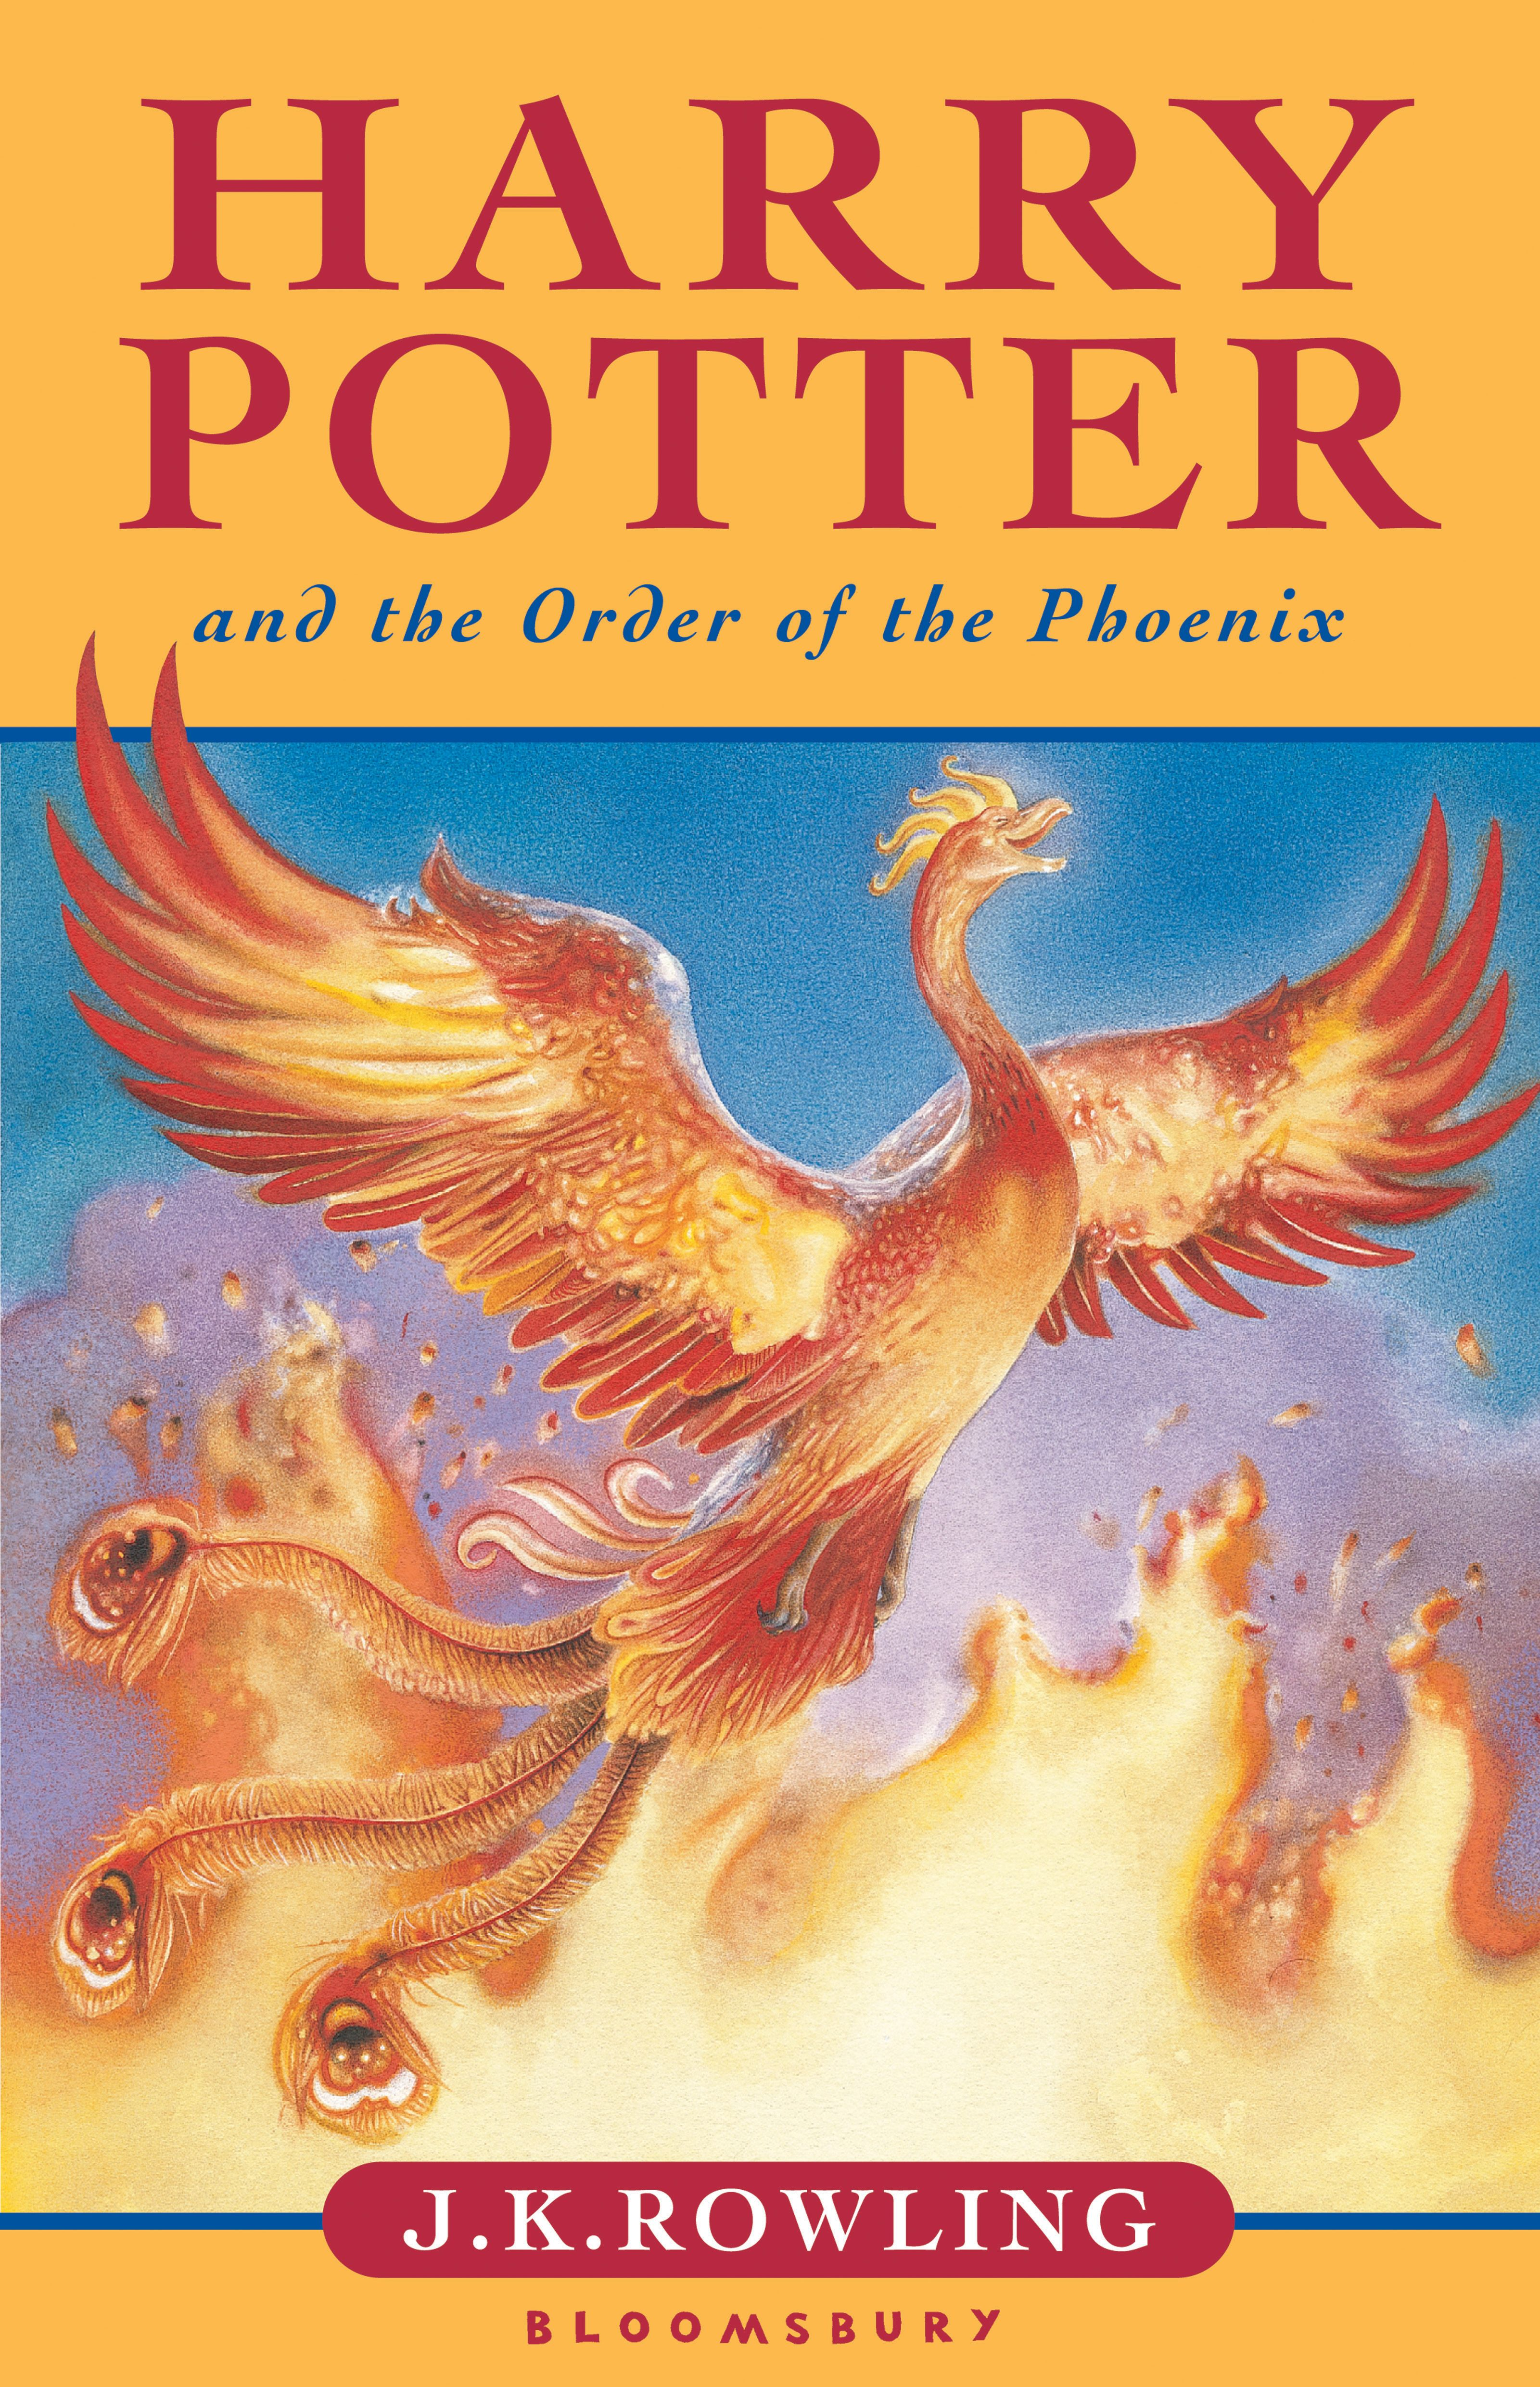 Book 5 Harry Potter And The Order Of The Phoenix Cover Art